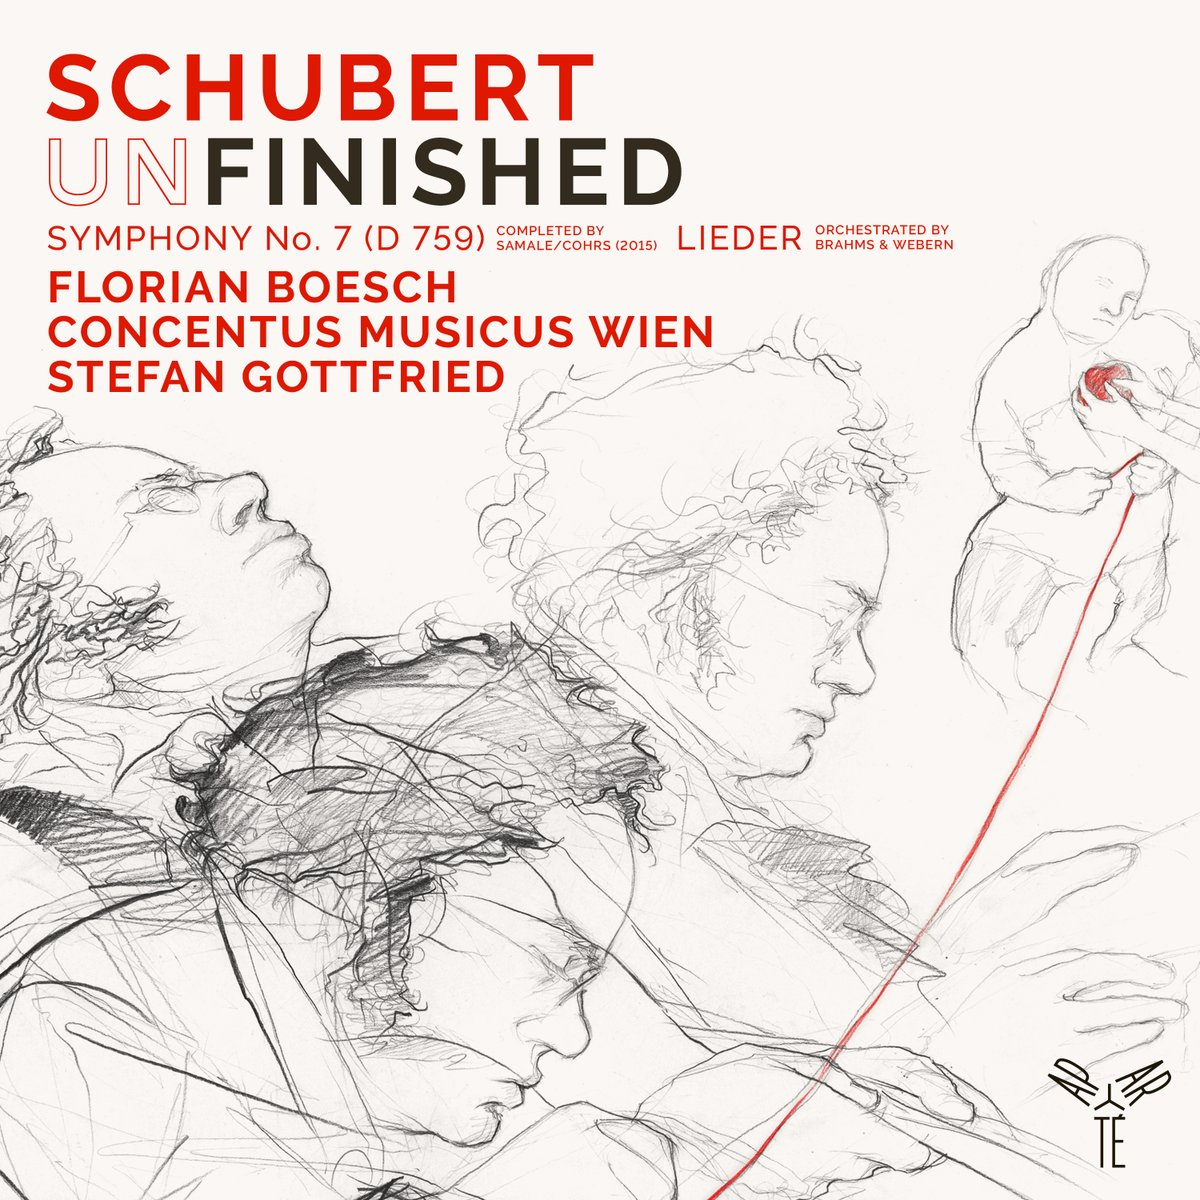 Schubert Unfinished by Concentus Musicus Wien